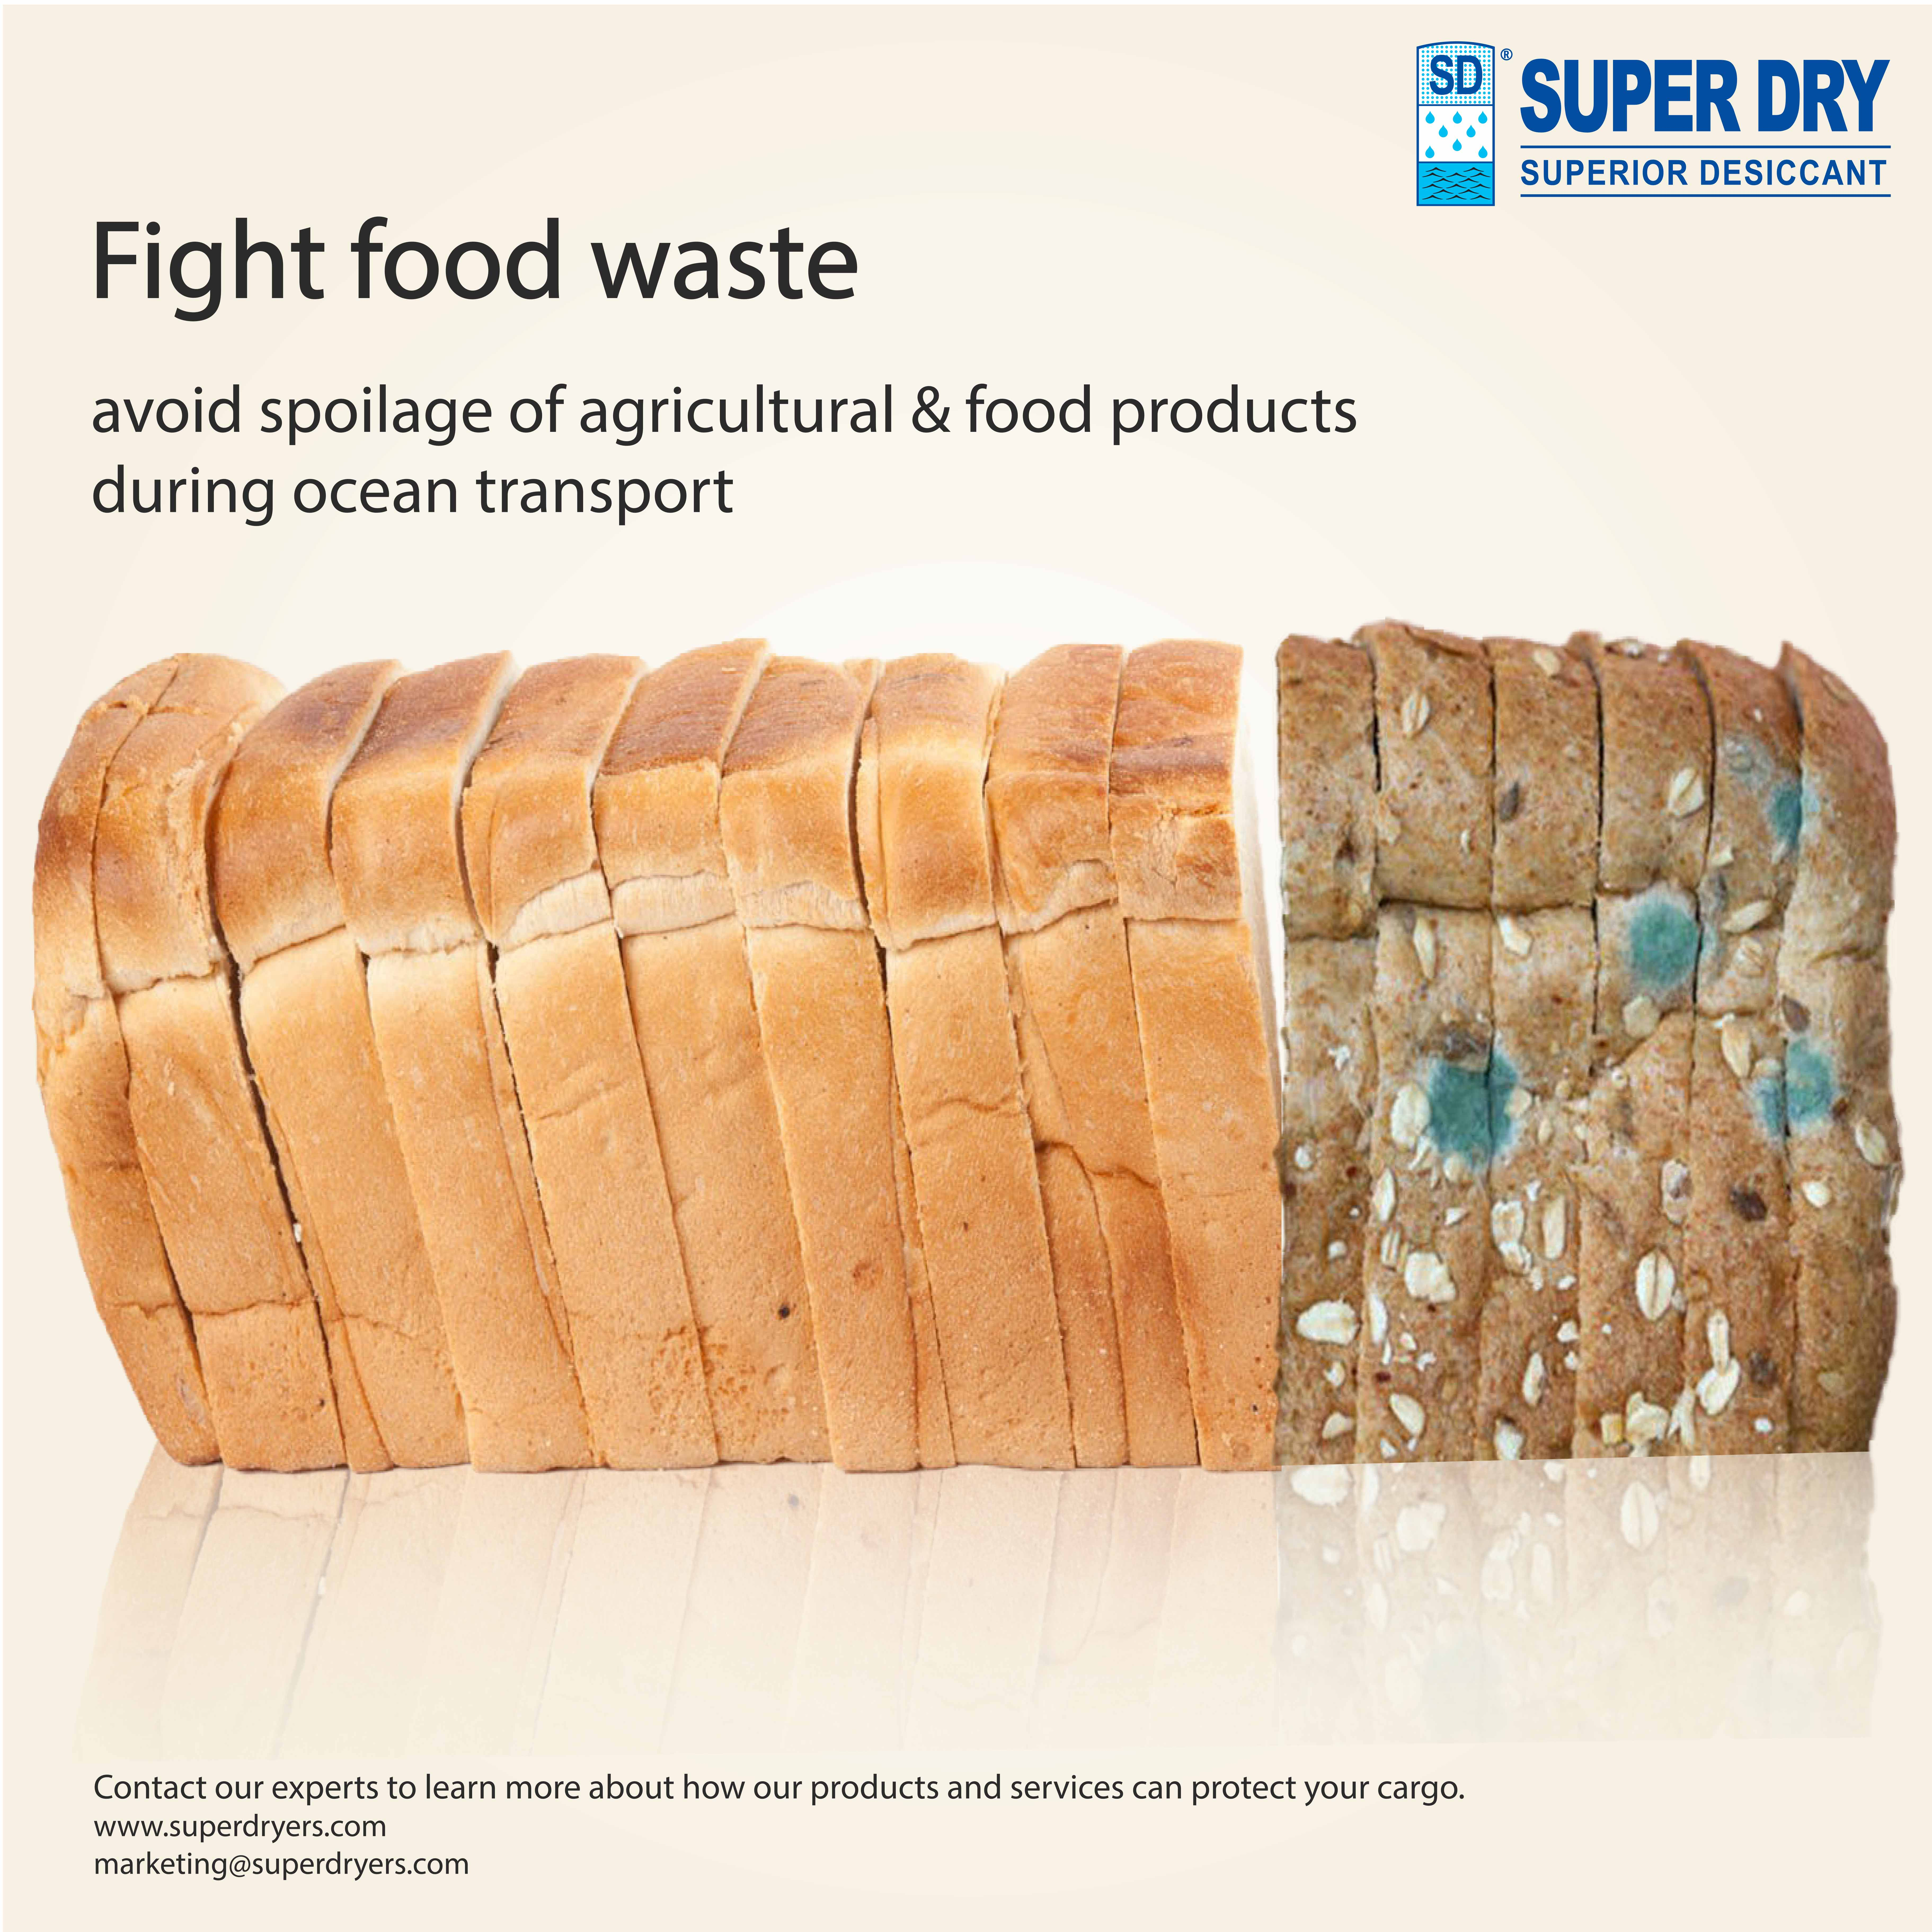 #Fight food waste